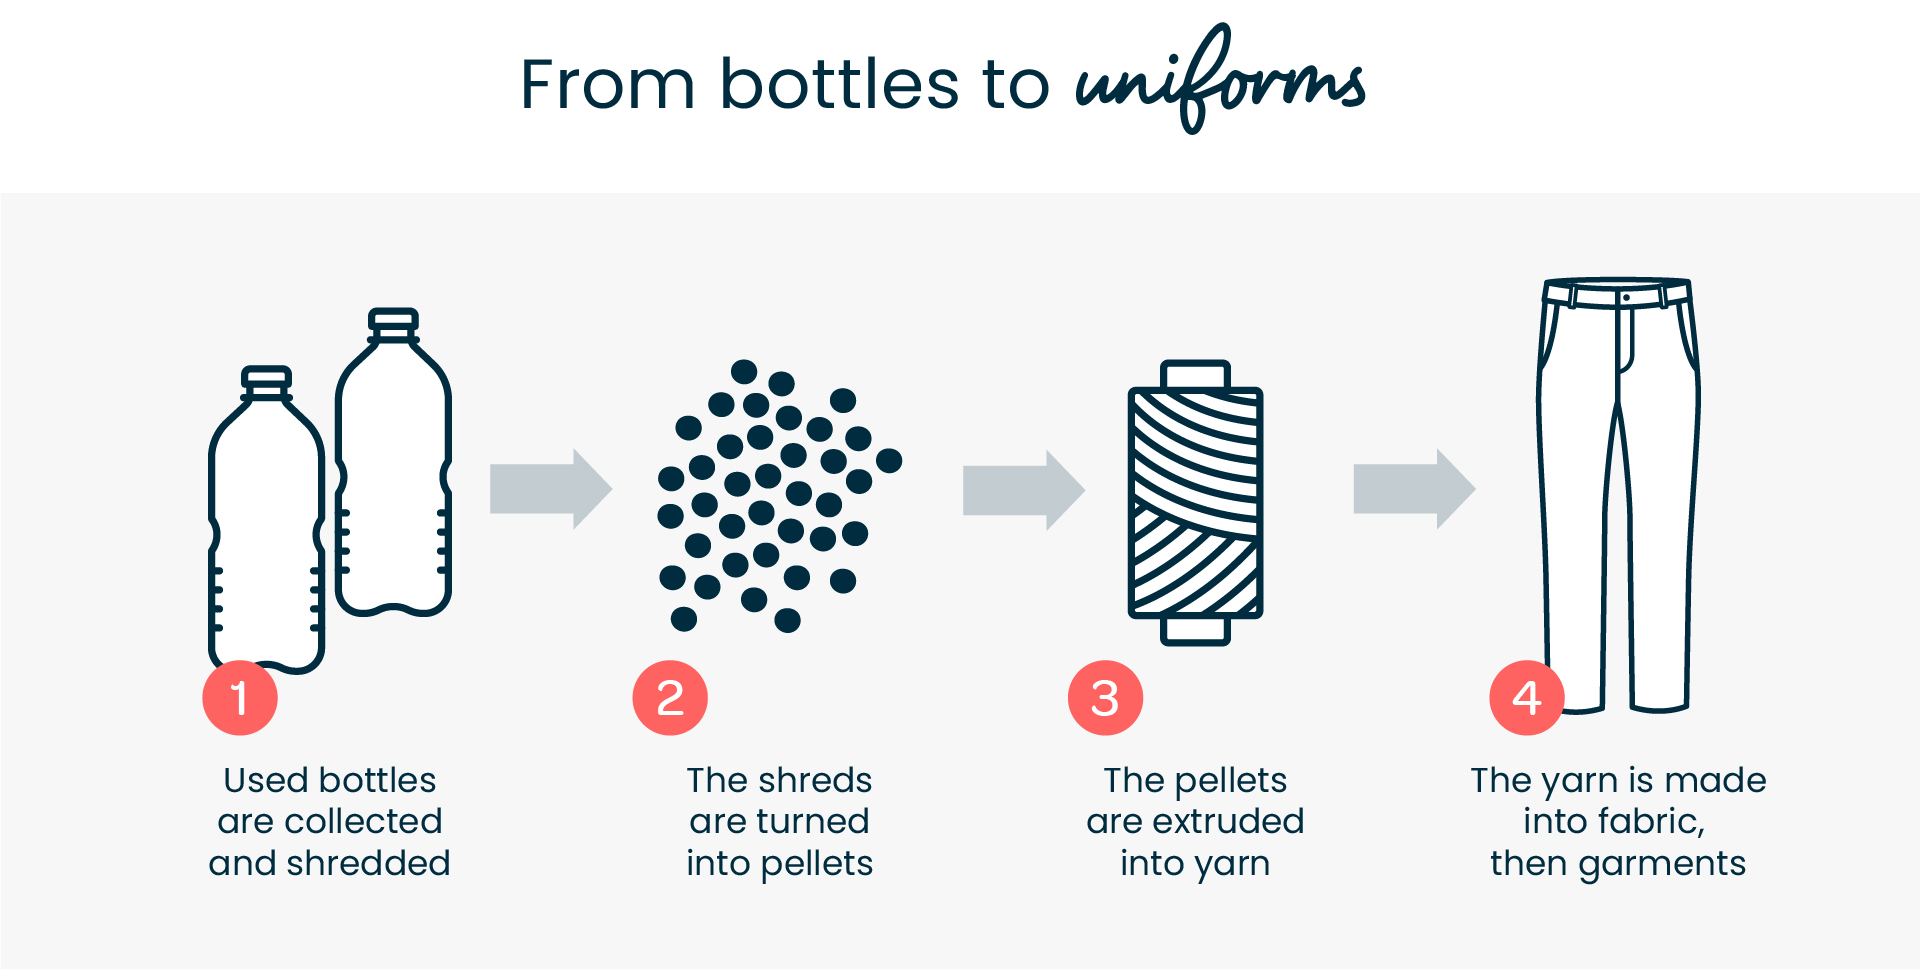 recycled polyester uniforms process